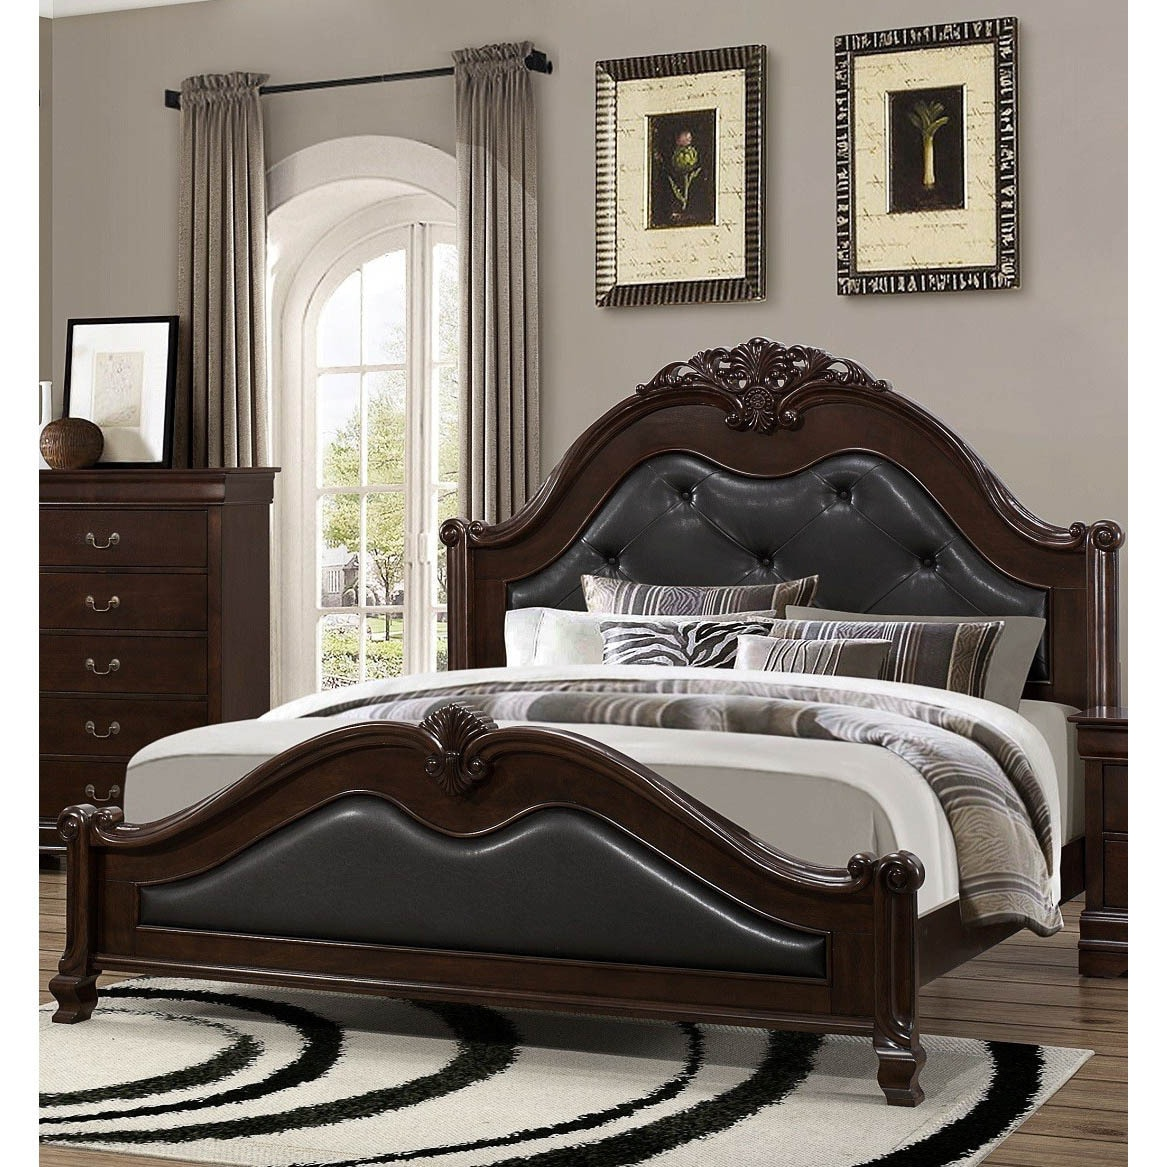 Lyke Home Cameron King Bed (Queen), Brown